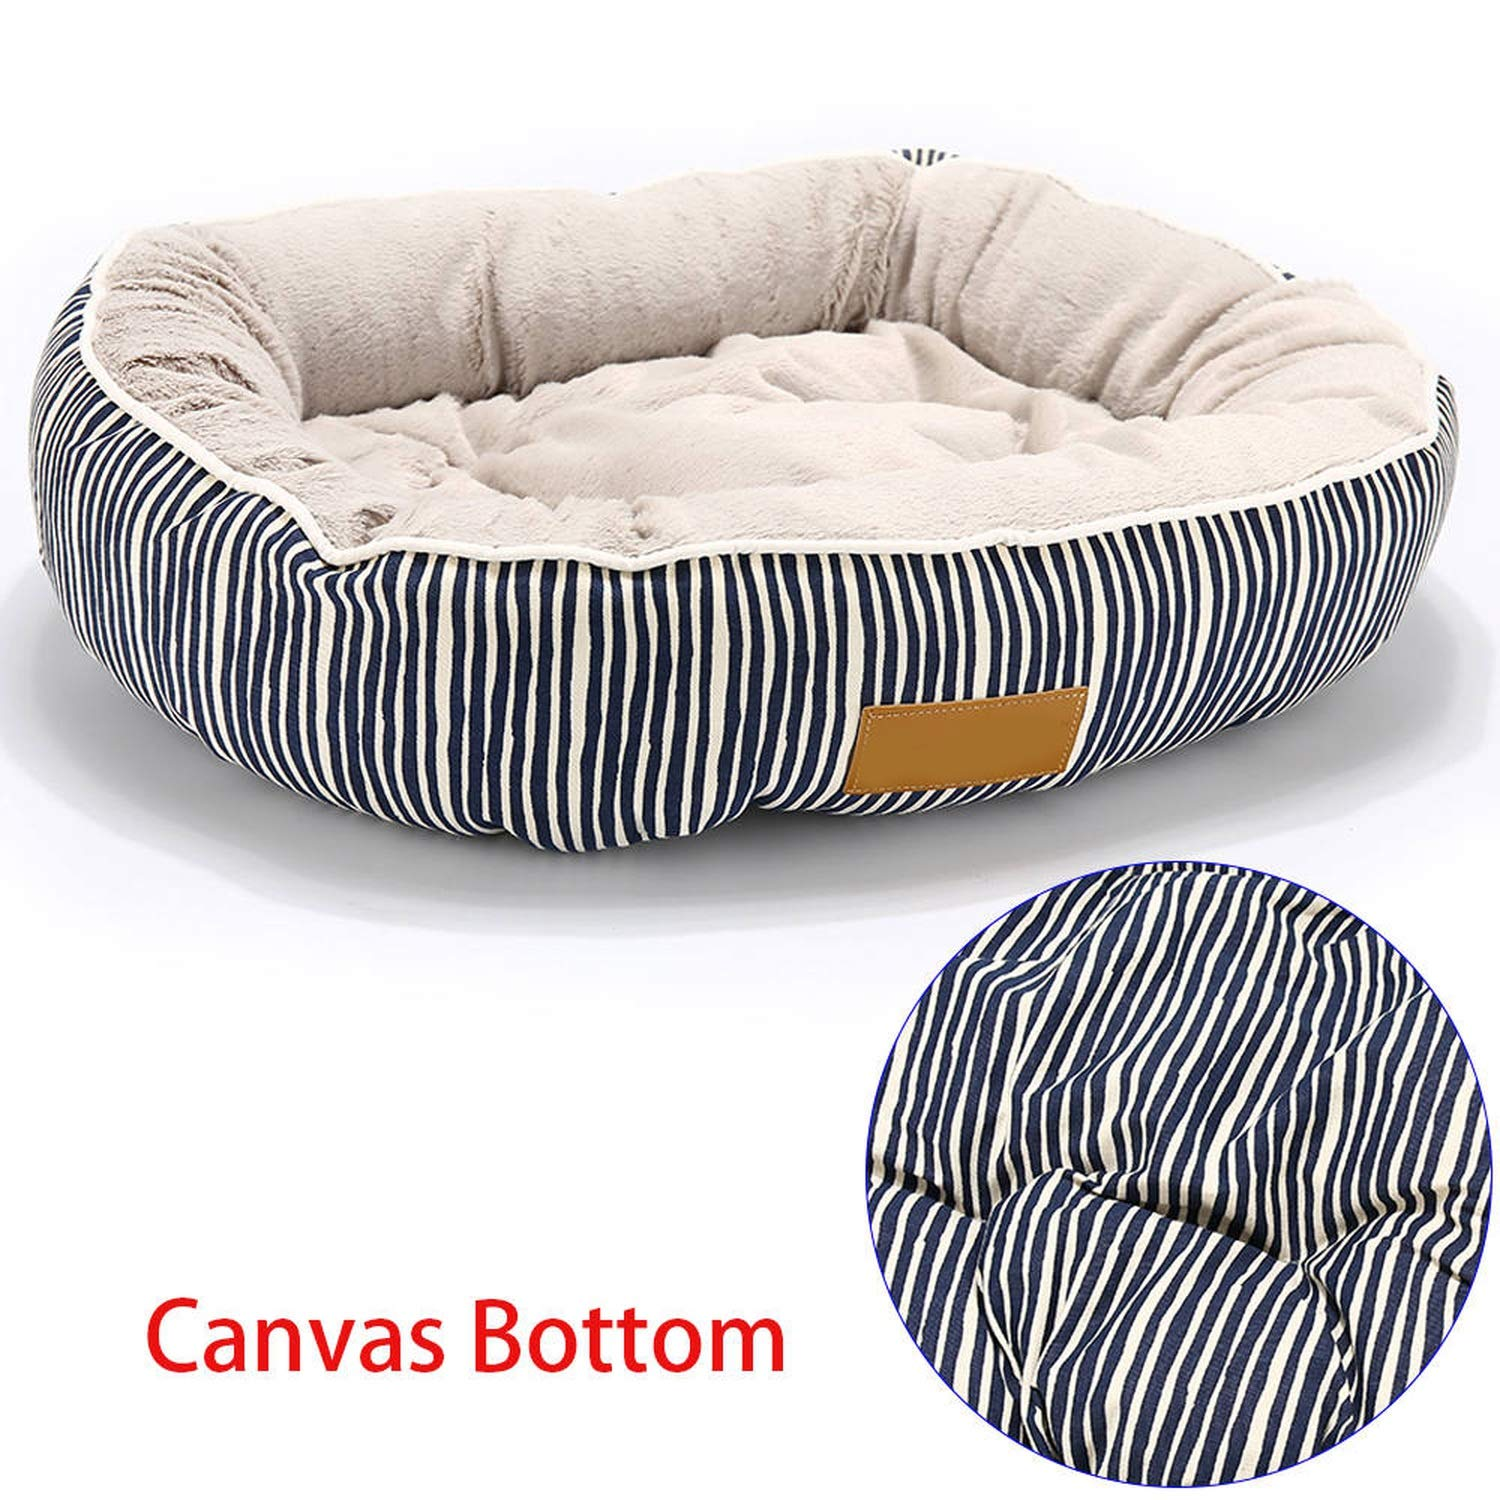 bluee S 45x35x15cmPets Products for Puppies Pet Bed for Animals Dog Beds for Large Dogs Cat House Dog Bed Mat Cat Sofa Supplies,bluee Stripe,L 65X55X18Cm